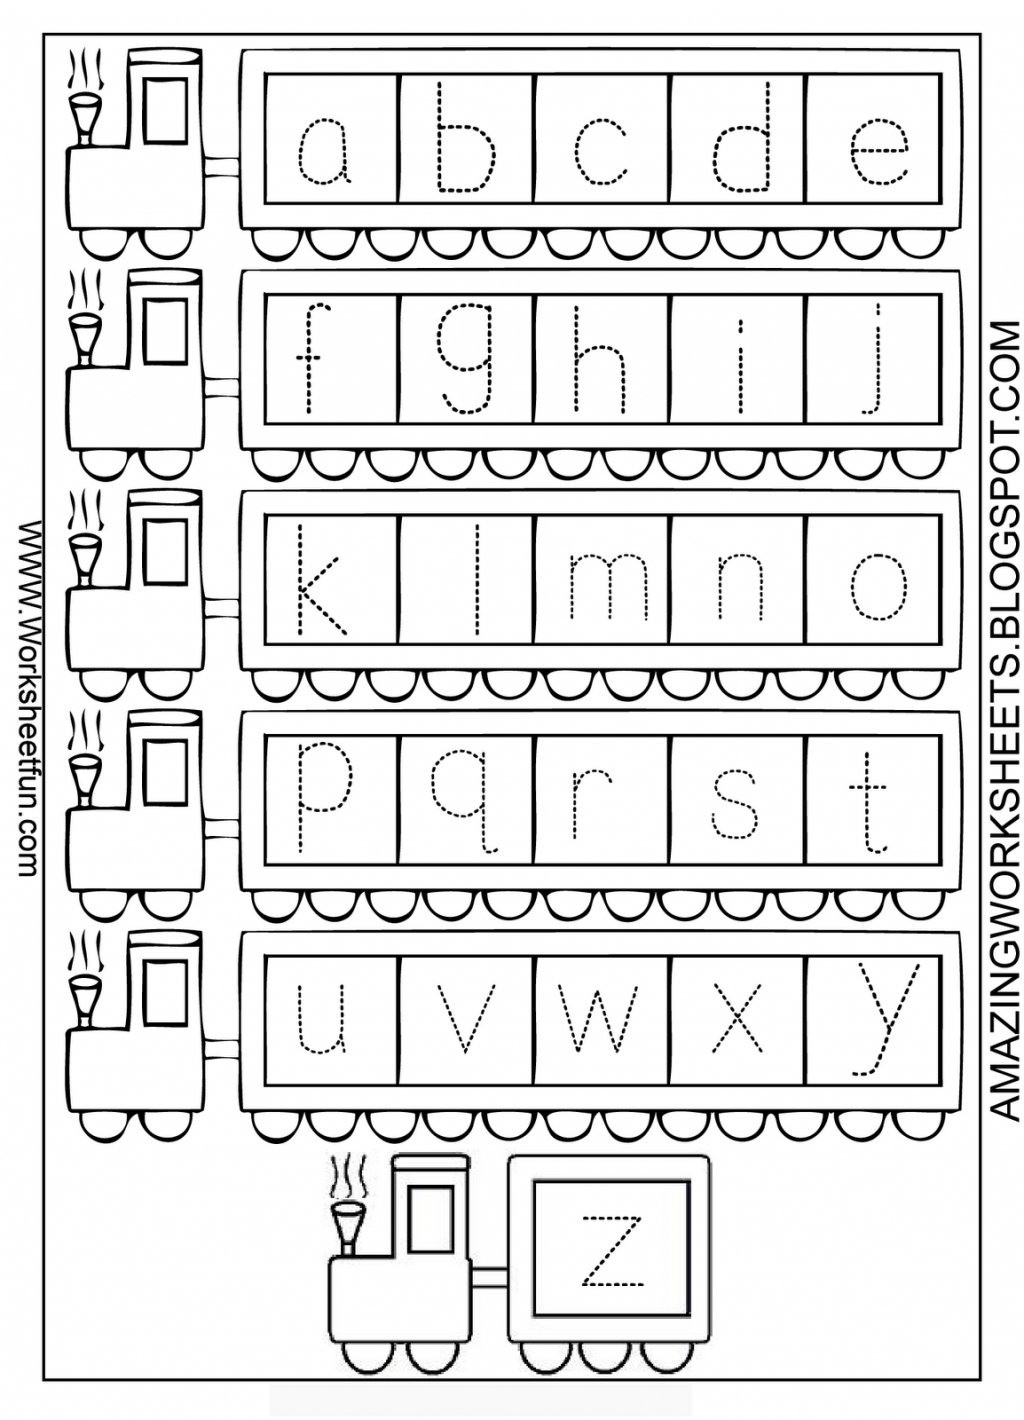 Alphabet Worksheets For Kindergarten Z Worksheetfun Az in A-Z Alphabet Worksheets Kindergarten